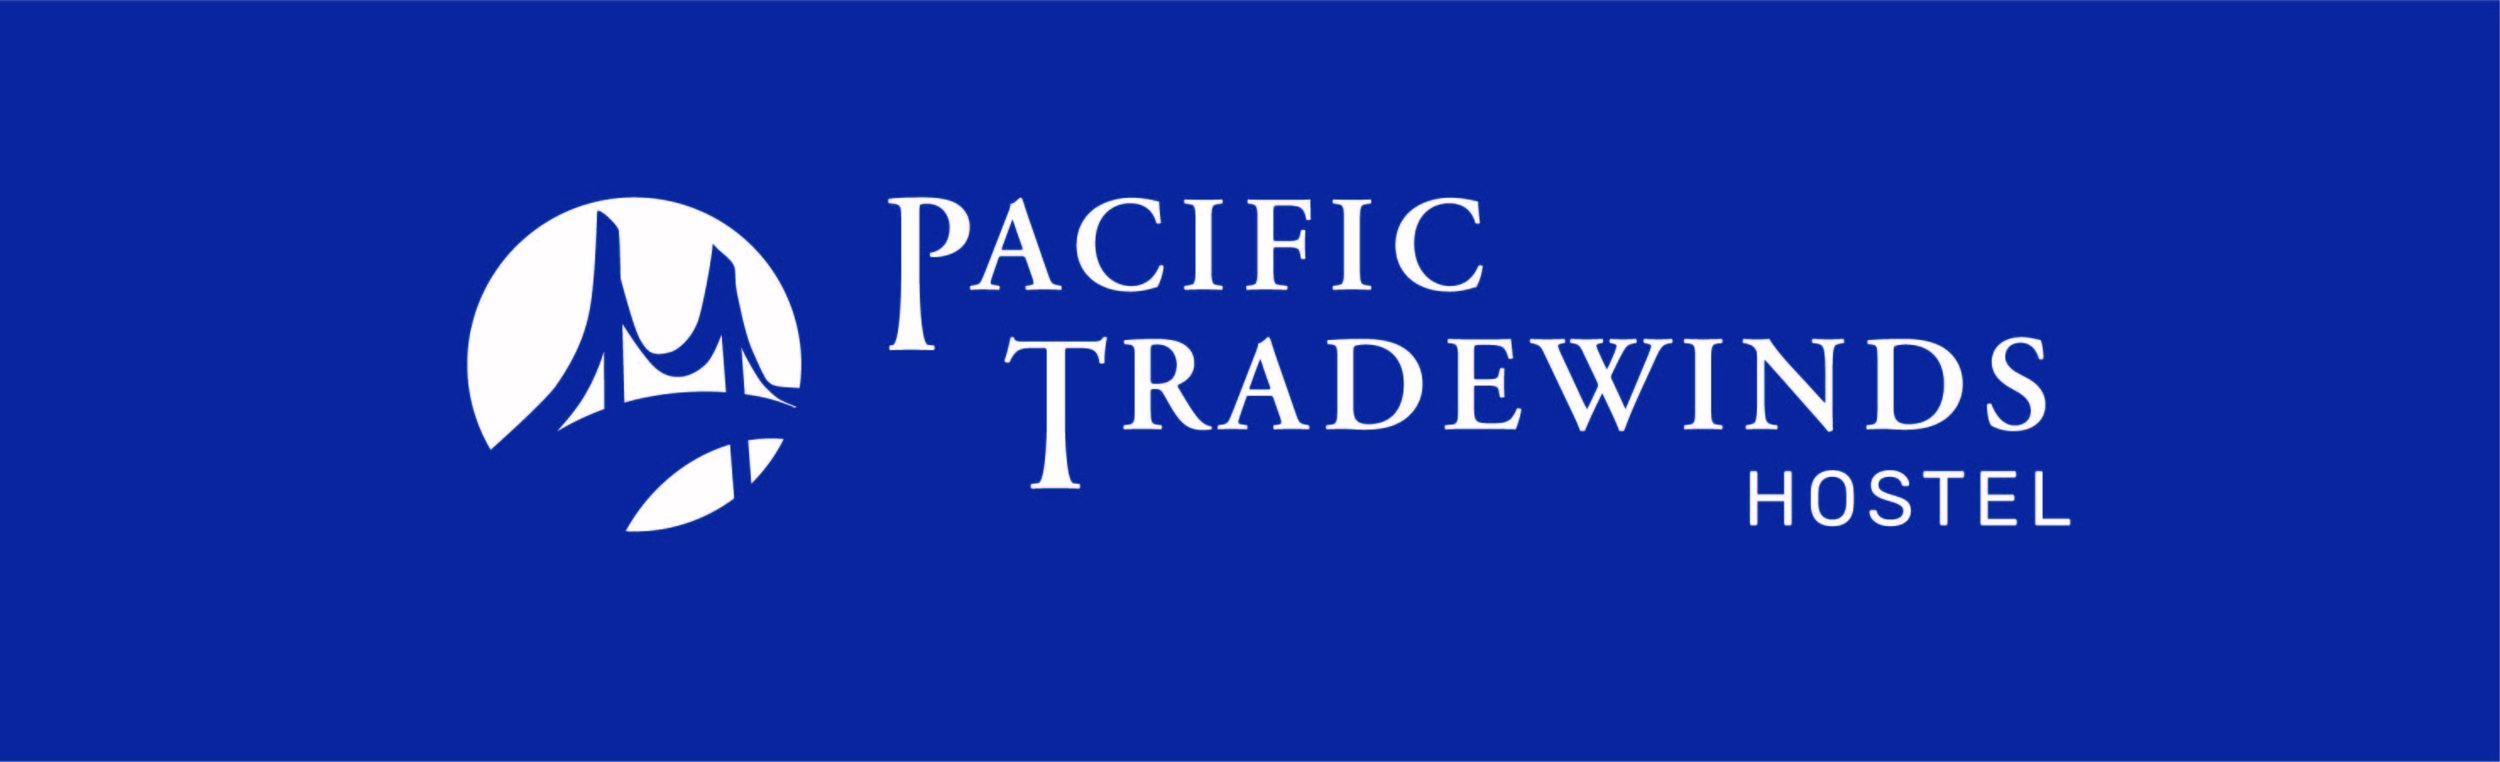 Pacific Tradwinds Logo2.jpg